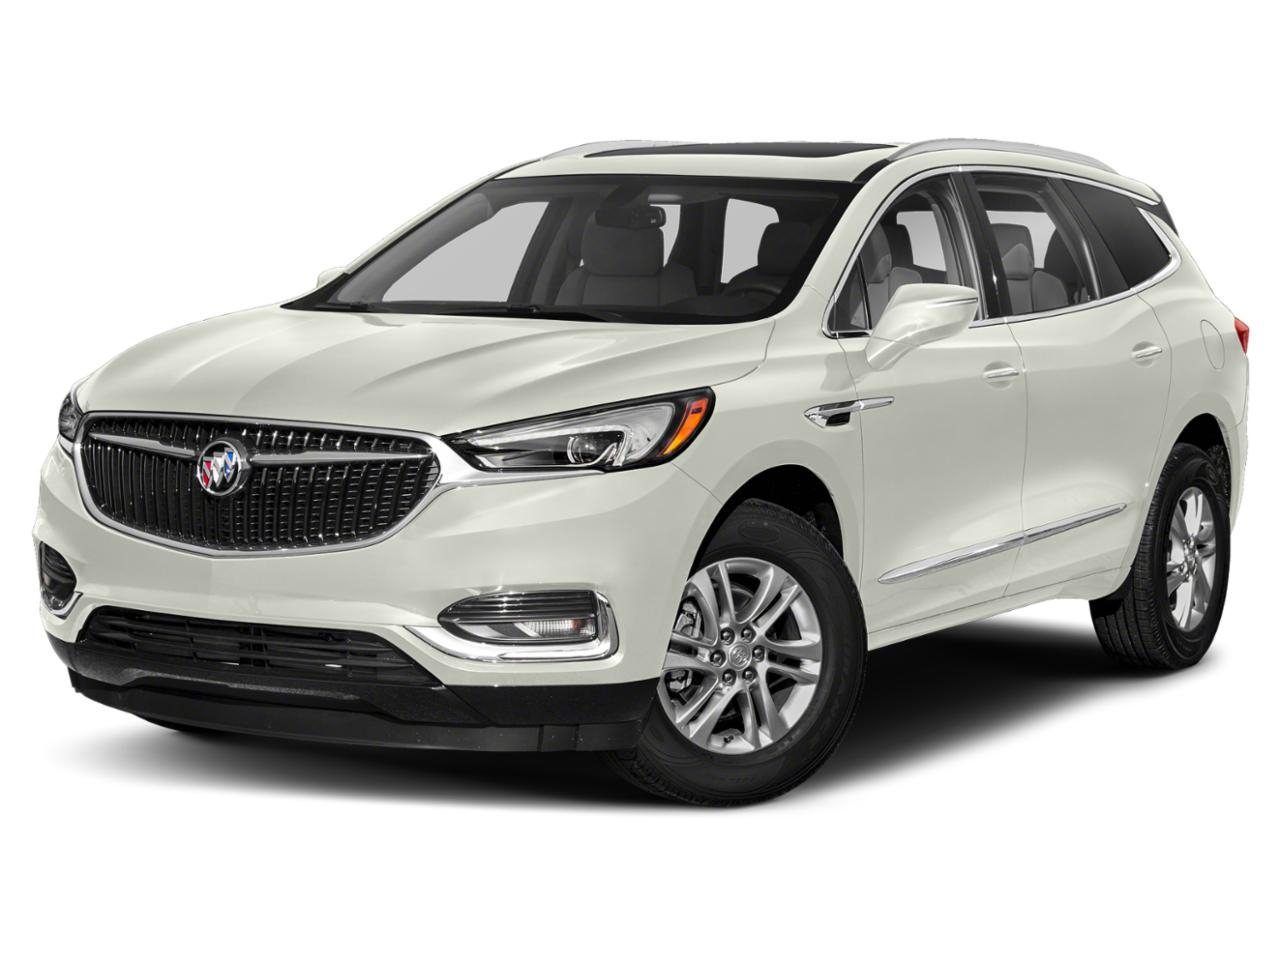 2020 Buick Enclave For Sale At Georgian Chevrolet Buick Gmc In Barrie On 2021 Buick Enclave Interior Colors, Heads Up Display, Incentives